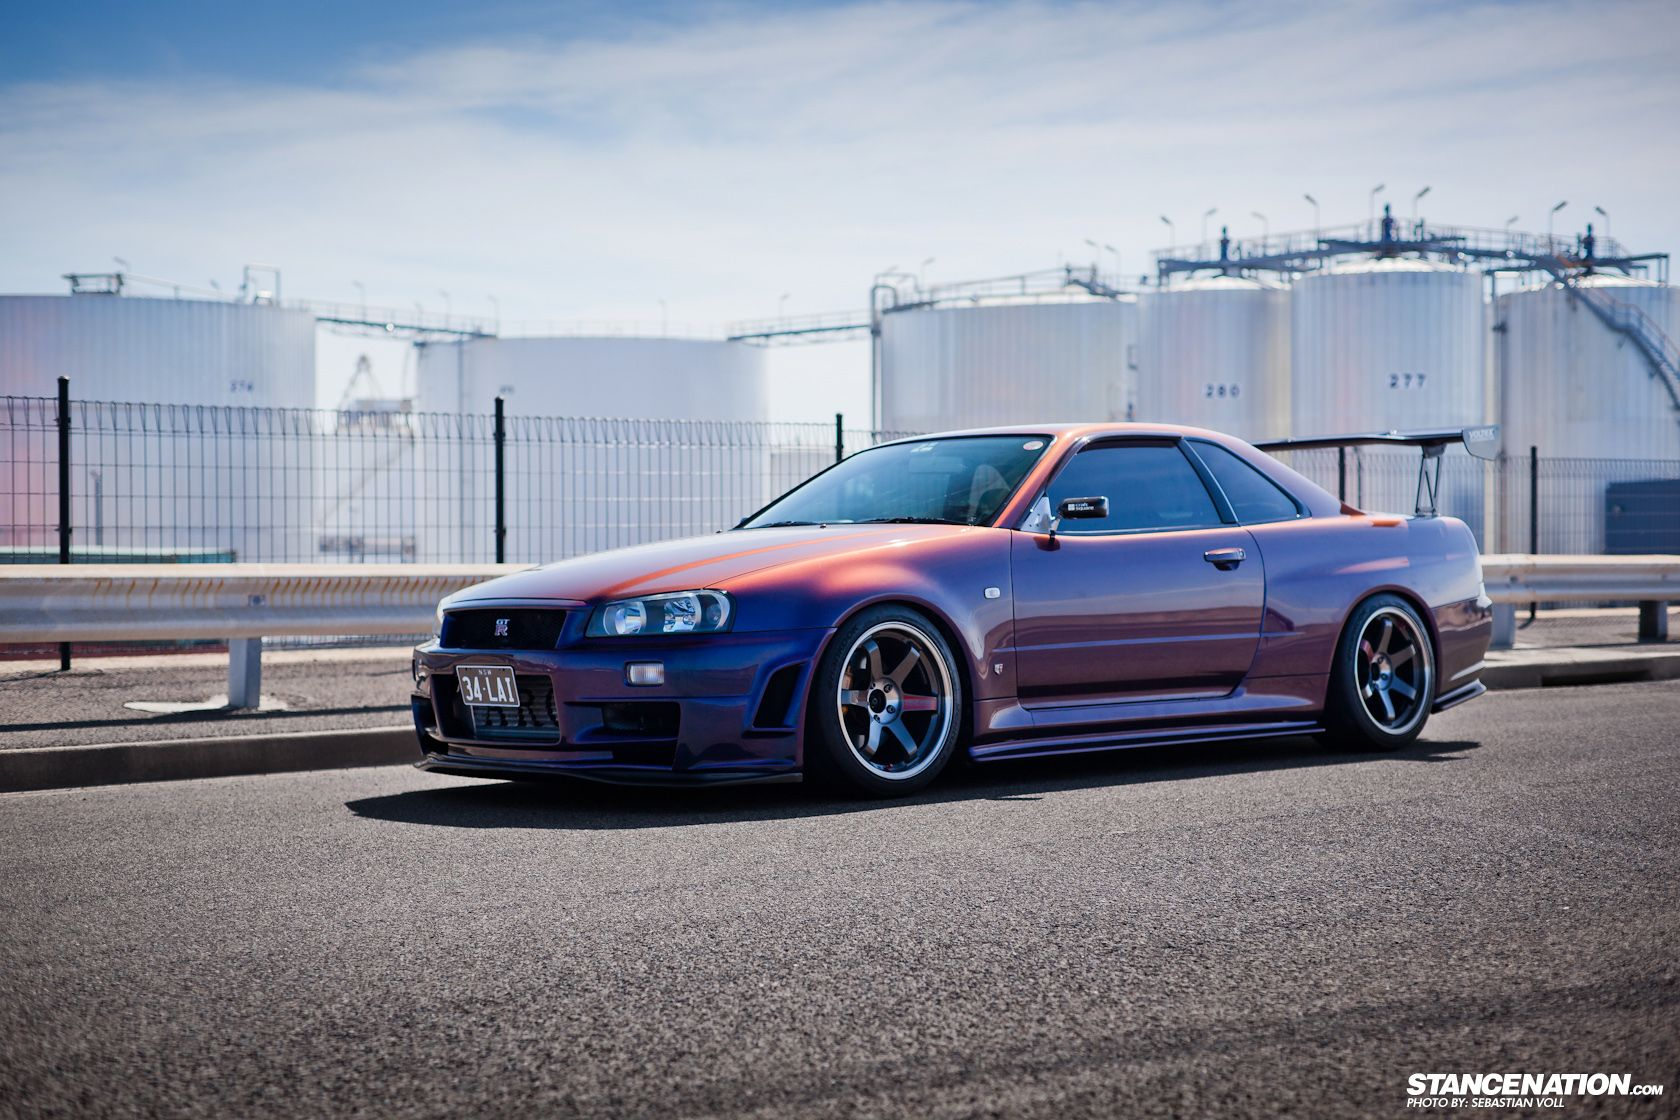 david s nissan skyline r34 gtr vehicles in motion pinterest nissan skyline nissan and. Black Bedroom Furniture Sets. Home Design Ideas